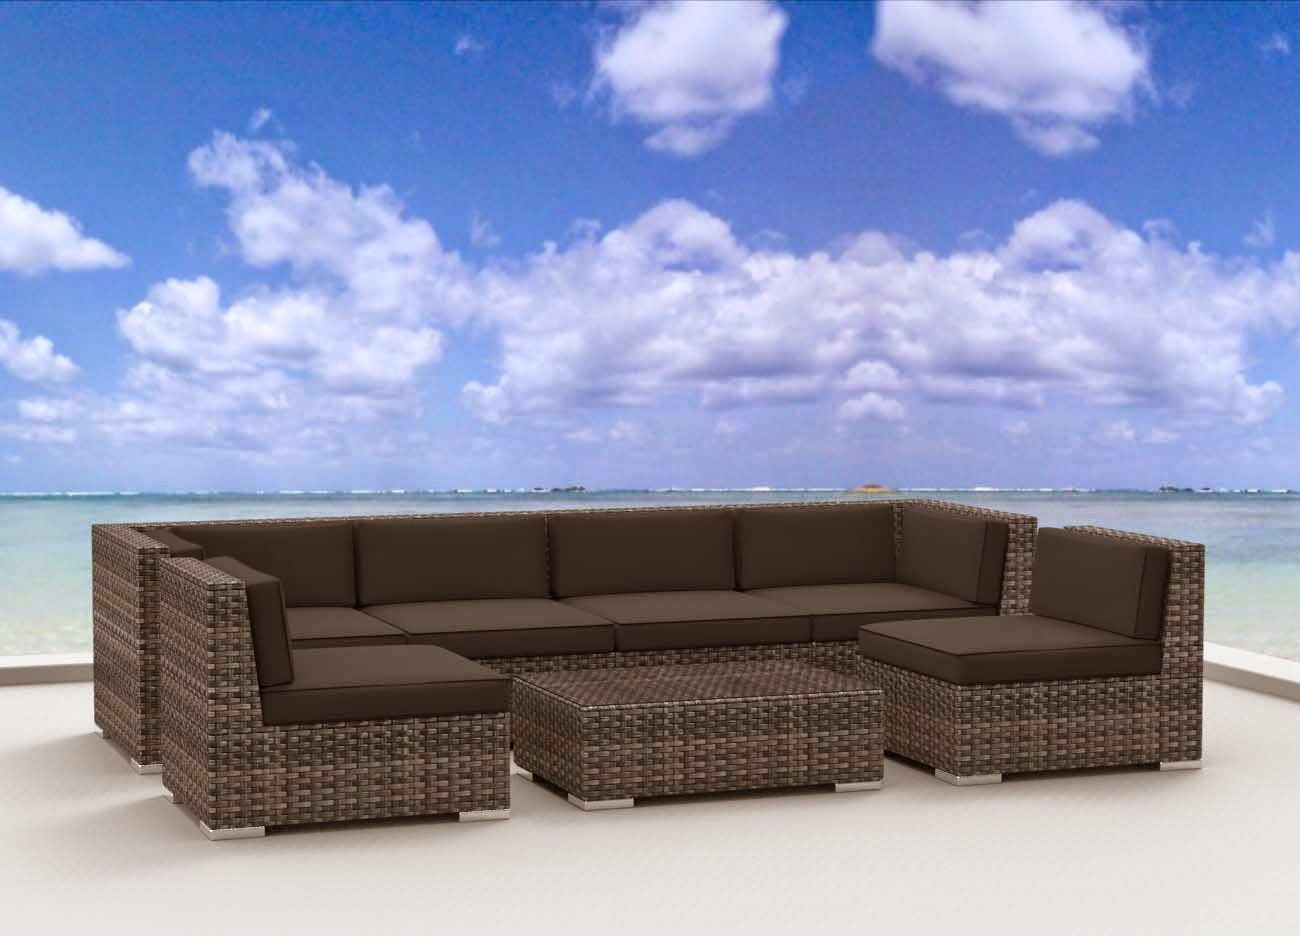 urban furnishing modern outdoor backyard wicker rattan patio furniture sofa sectional couch set. Black Bedroom Furniture Sets. Home Design Ideas